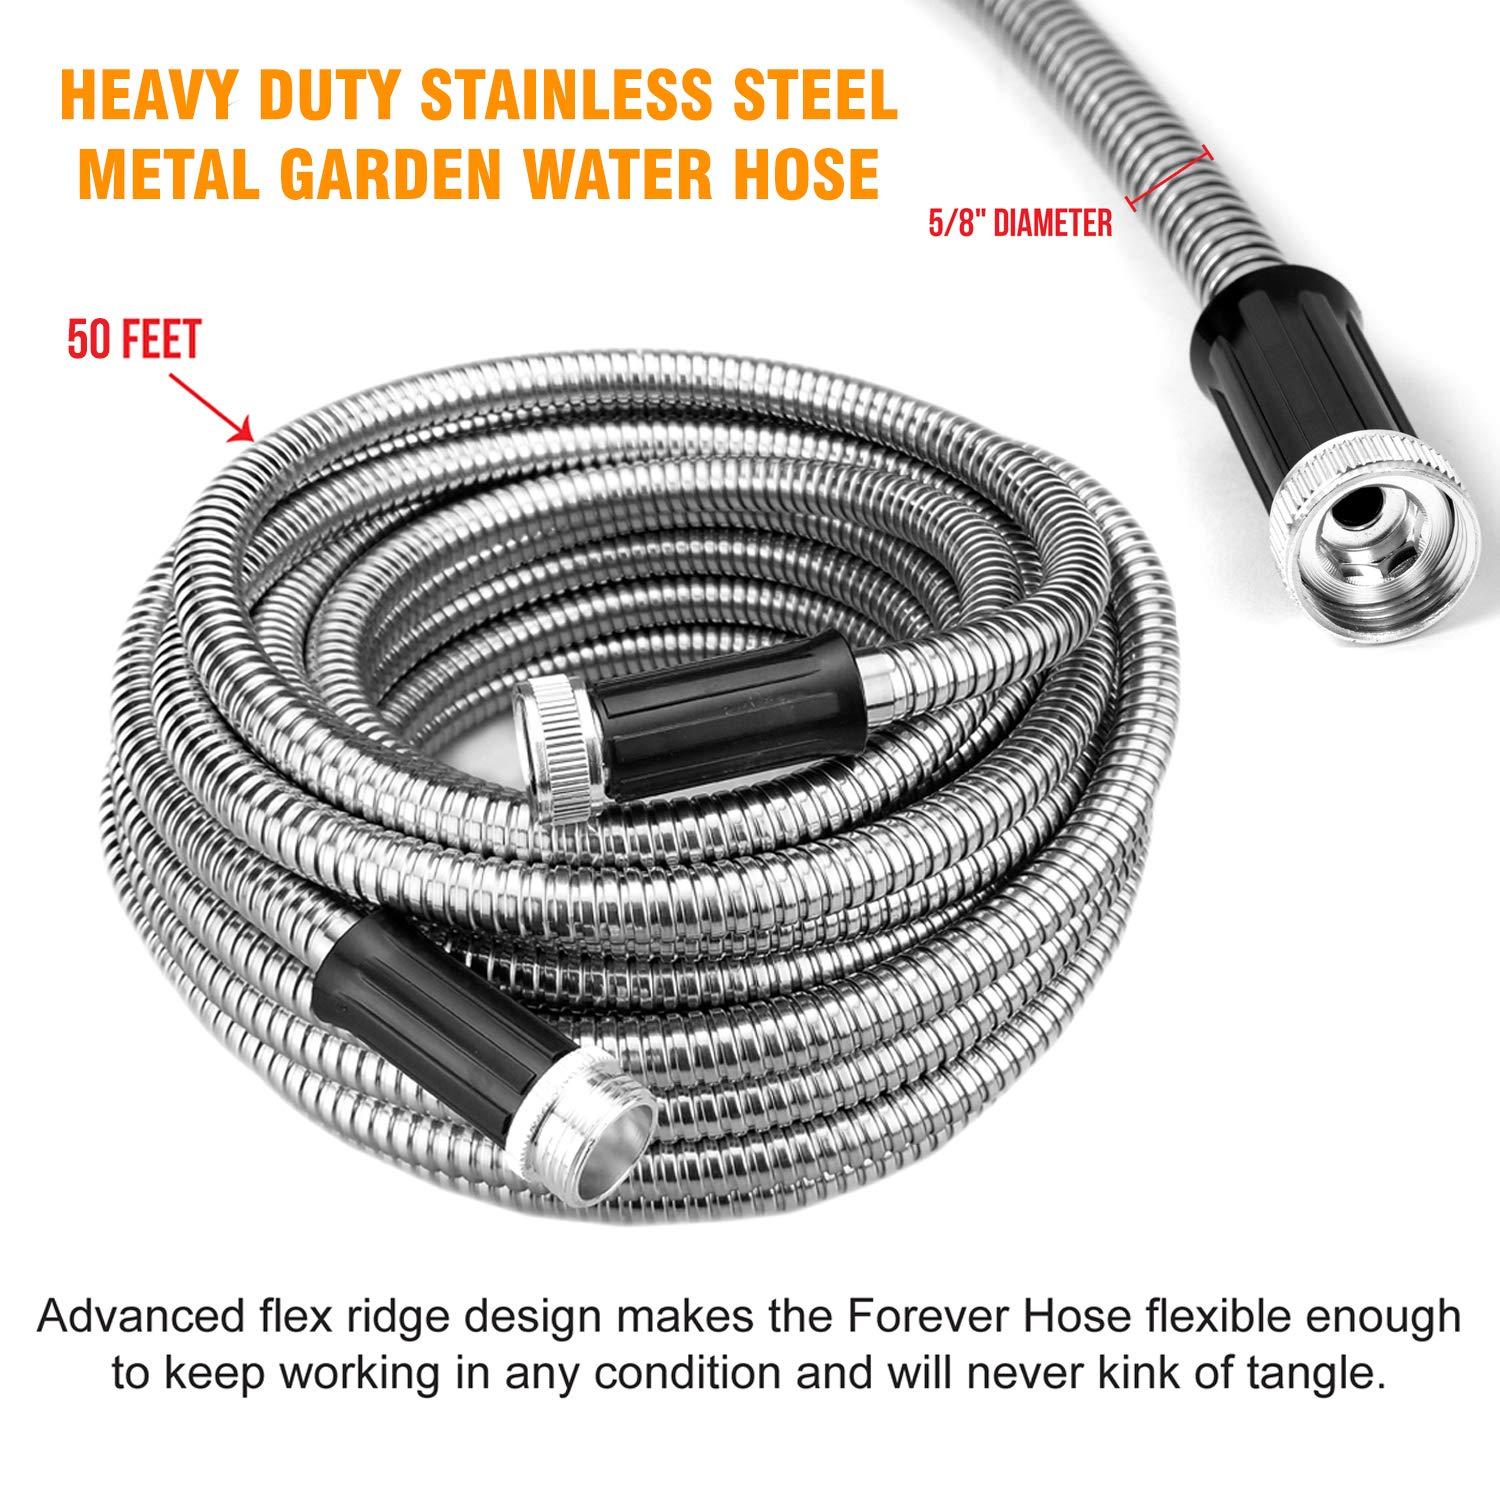 FOREVER STEEL HOSE   50FT 304 Heavy Duty Stainless Steel Metal Garden Water Hose - Kink Free, Flexible, Expandable, Lightweight   UV Resistant   Stays Cool in Summers, Never Frozen in Winter